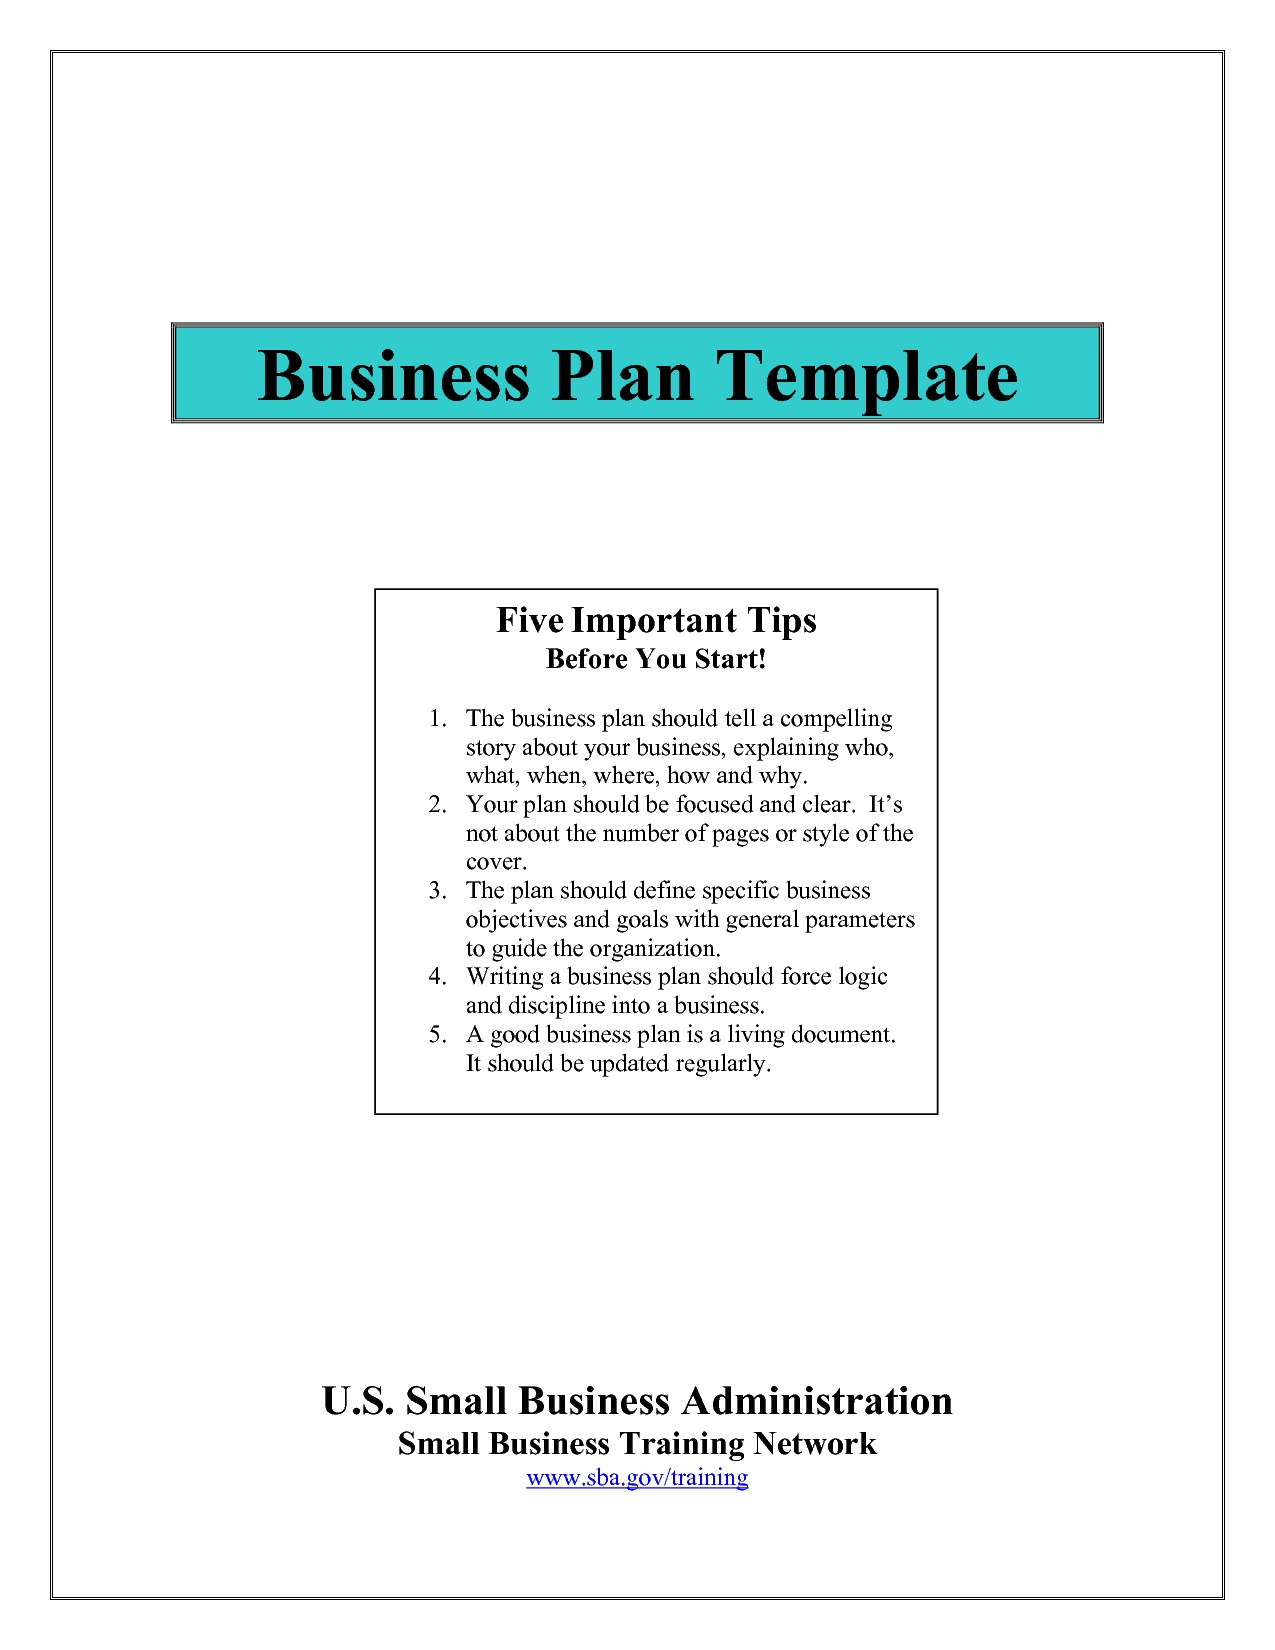 Business Plan Template Sba Top Templates A Score ~ Fanmailus Pertaining To Sba Business Plan Template Pdf